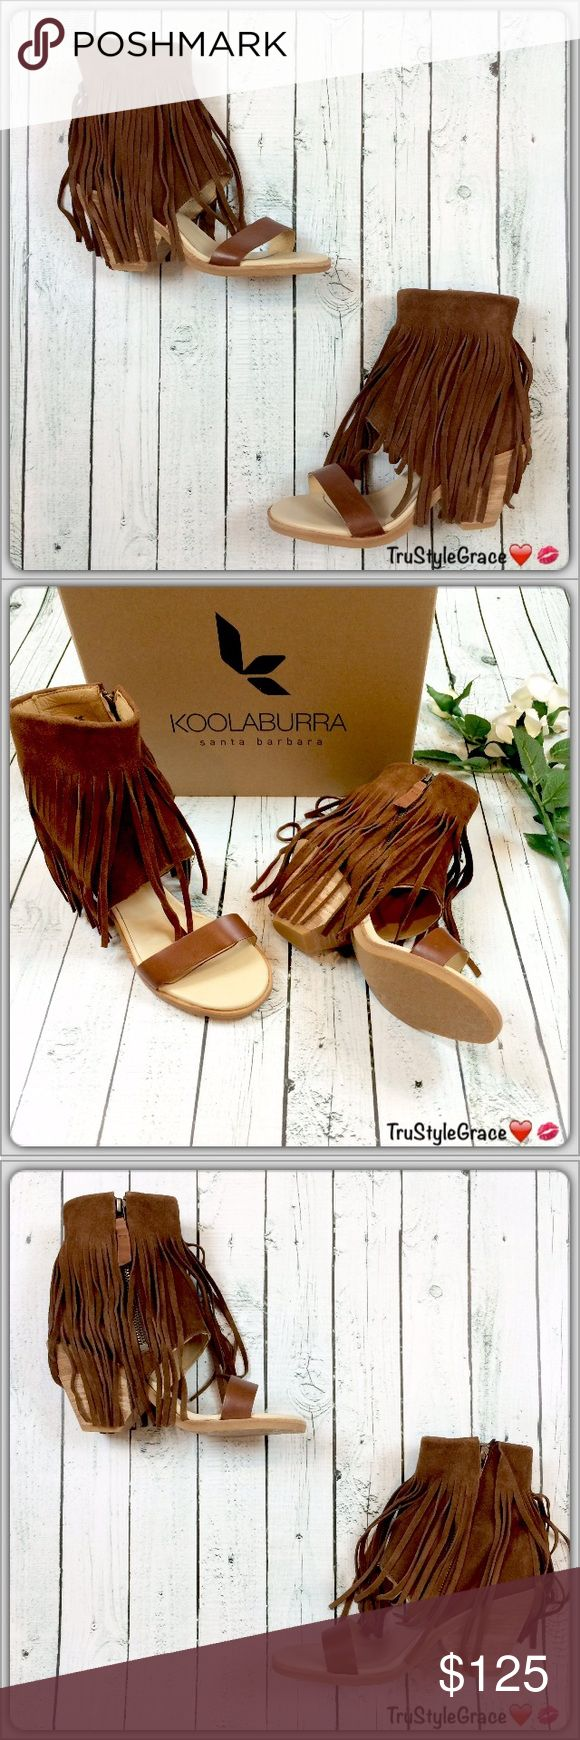 "BNIB - Fun Fringe Suede Open-Toe Booties/Sandals Brand New With Box, Never Worn ✨Koolaburra Piaz II Fringe Open-Toe Booties/Sandals✨Color: Kona Coffee (Also Available in Chestnut) ✨Size: 7✨100% Leather (Suede Feel) ✨Heel: Approx. 3"" ✨Shaft: Approx. 6.5"" From Arch ✨Side-Zip Closure ✨Boot-Cuff Sandal With Floor Length Fringe ✨Super Sexy, Fun & Flirty ✨Expect Compliments Whenever You Wear Them! I Sooo Love Mine!! ❤ ✨️Slight imperfections do not take away from beauty (see photos) reflected in…"